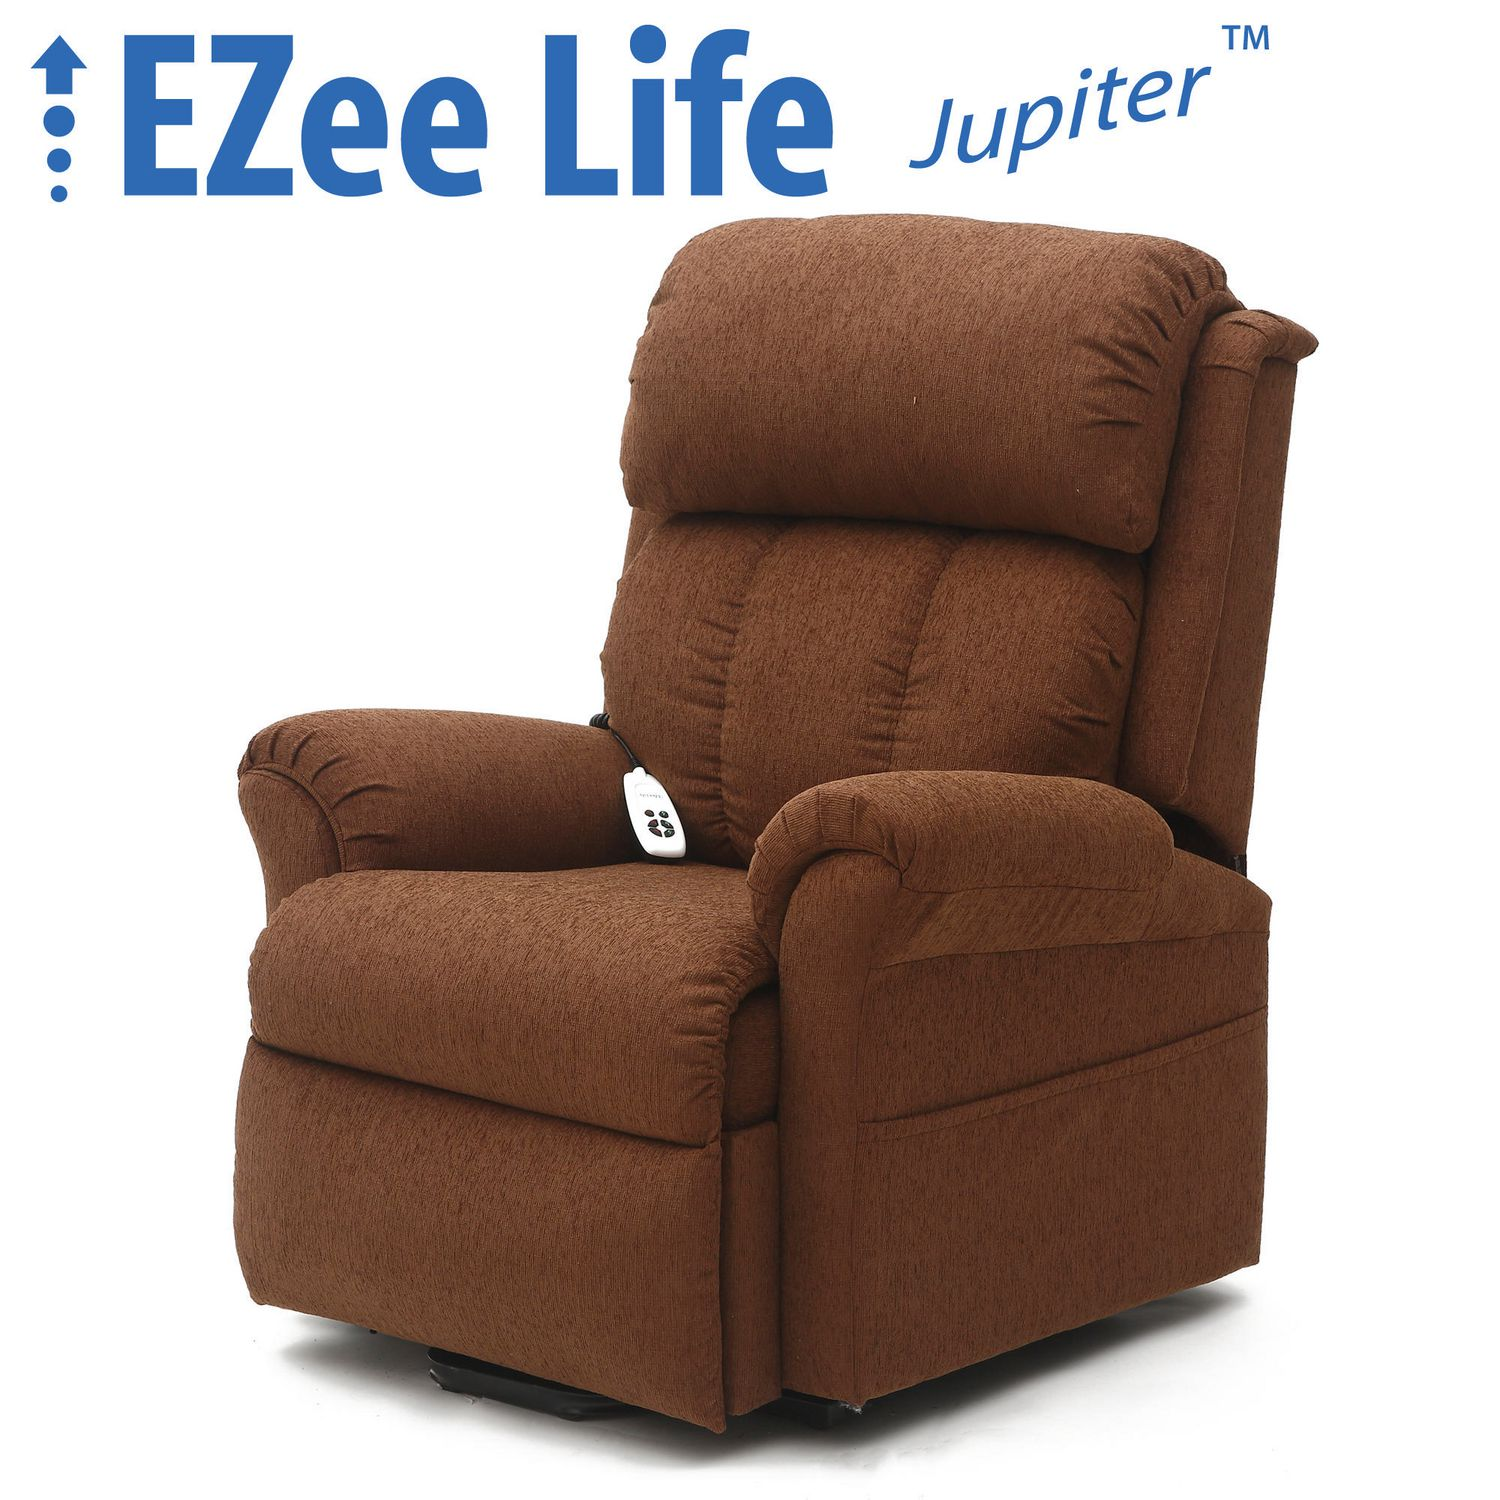 sc 1 st  Walmart Canada : easy lift chair - lorbestier.org